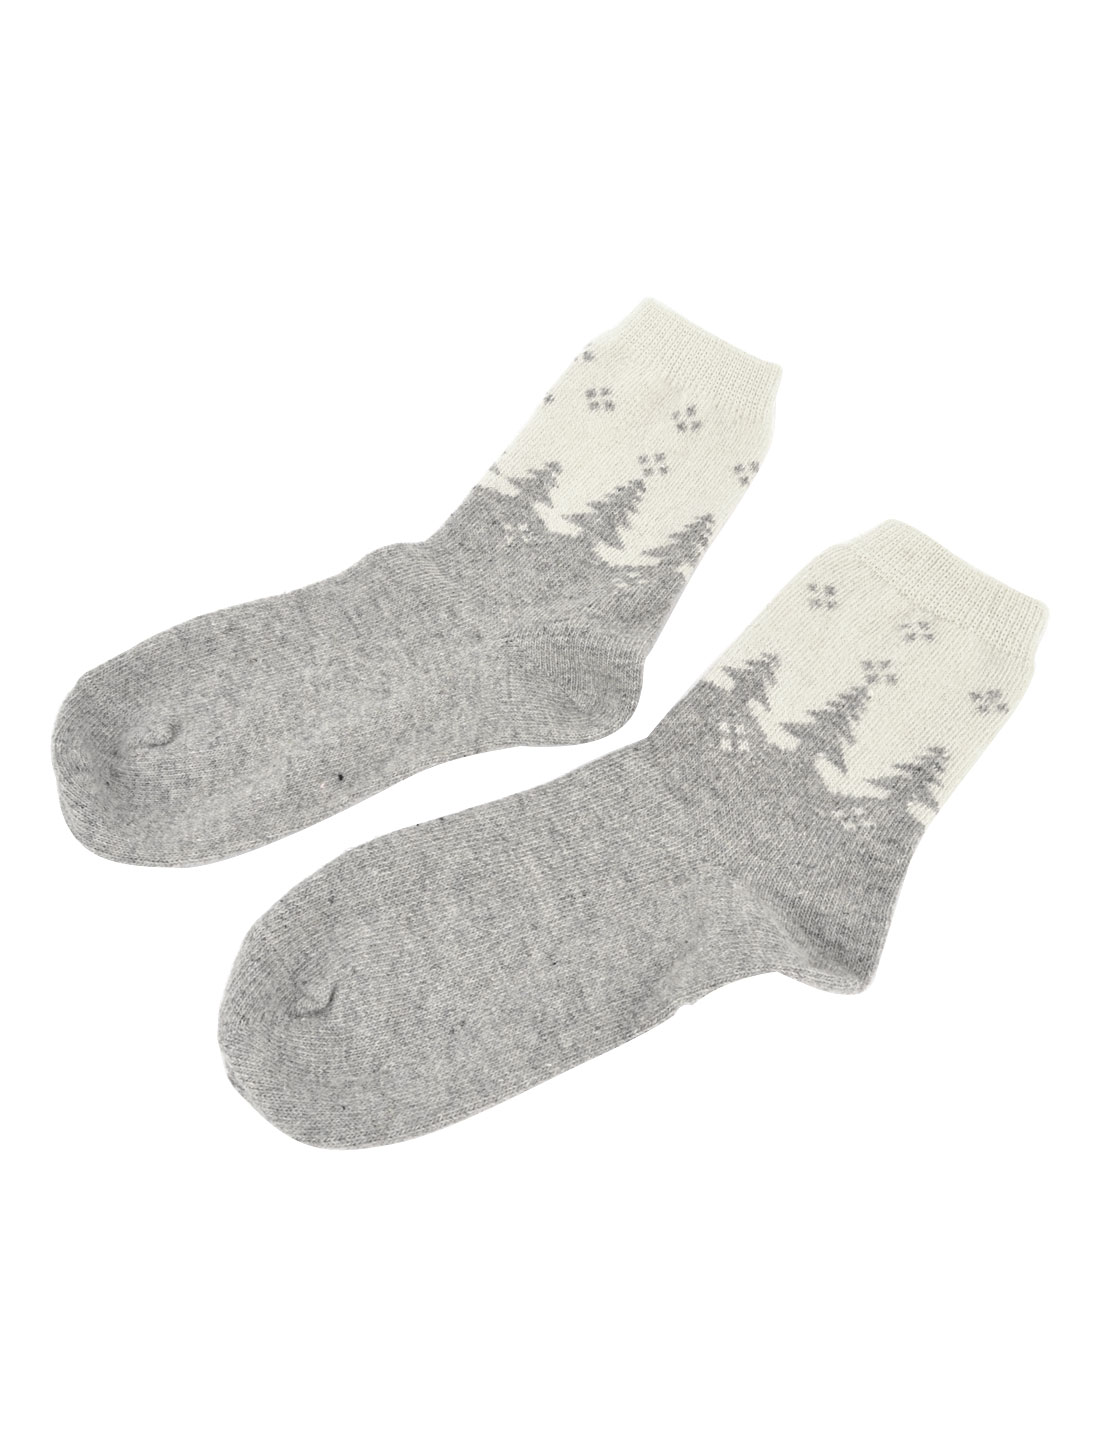 Pair Warm Wool Acrylic Tree Print Stretchy Ankle High Socks Gray White for Women